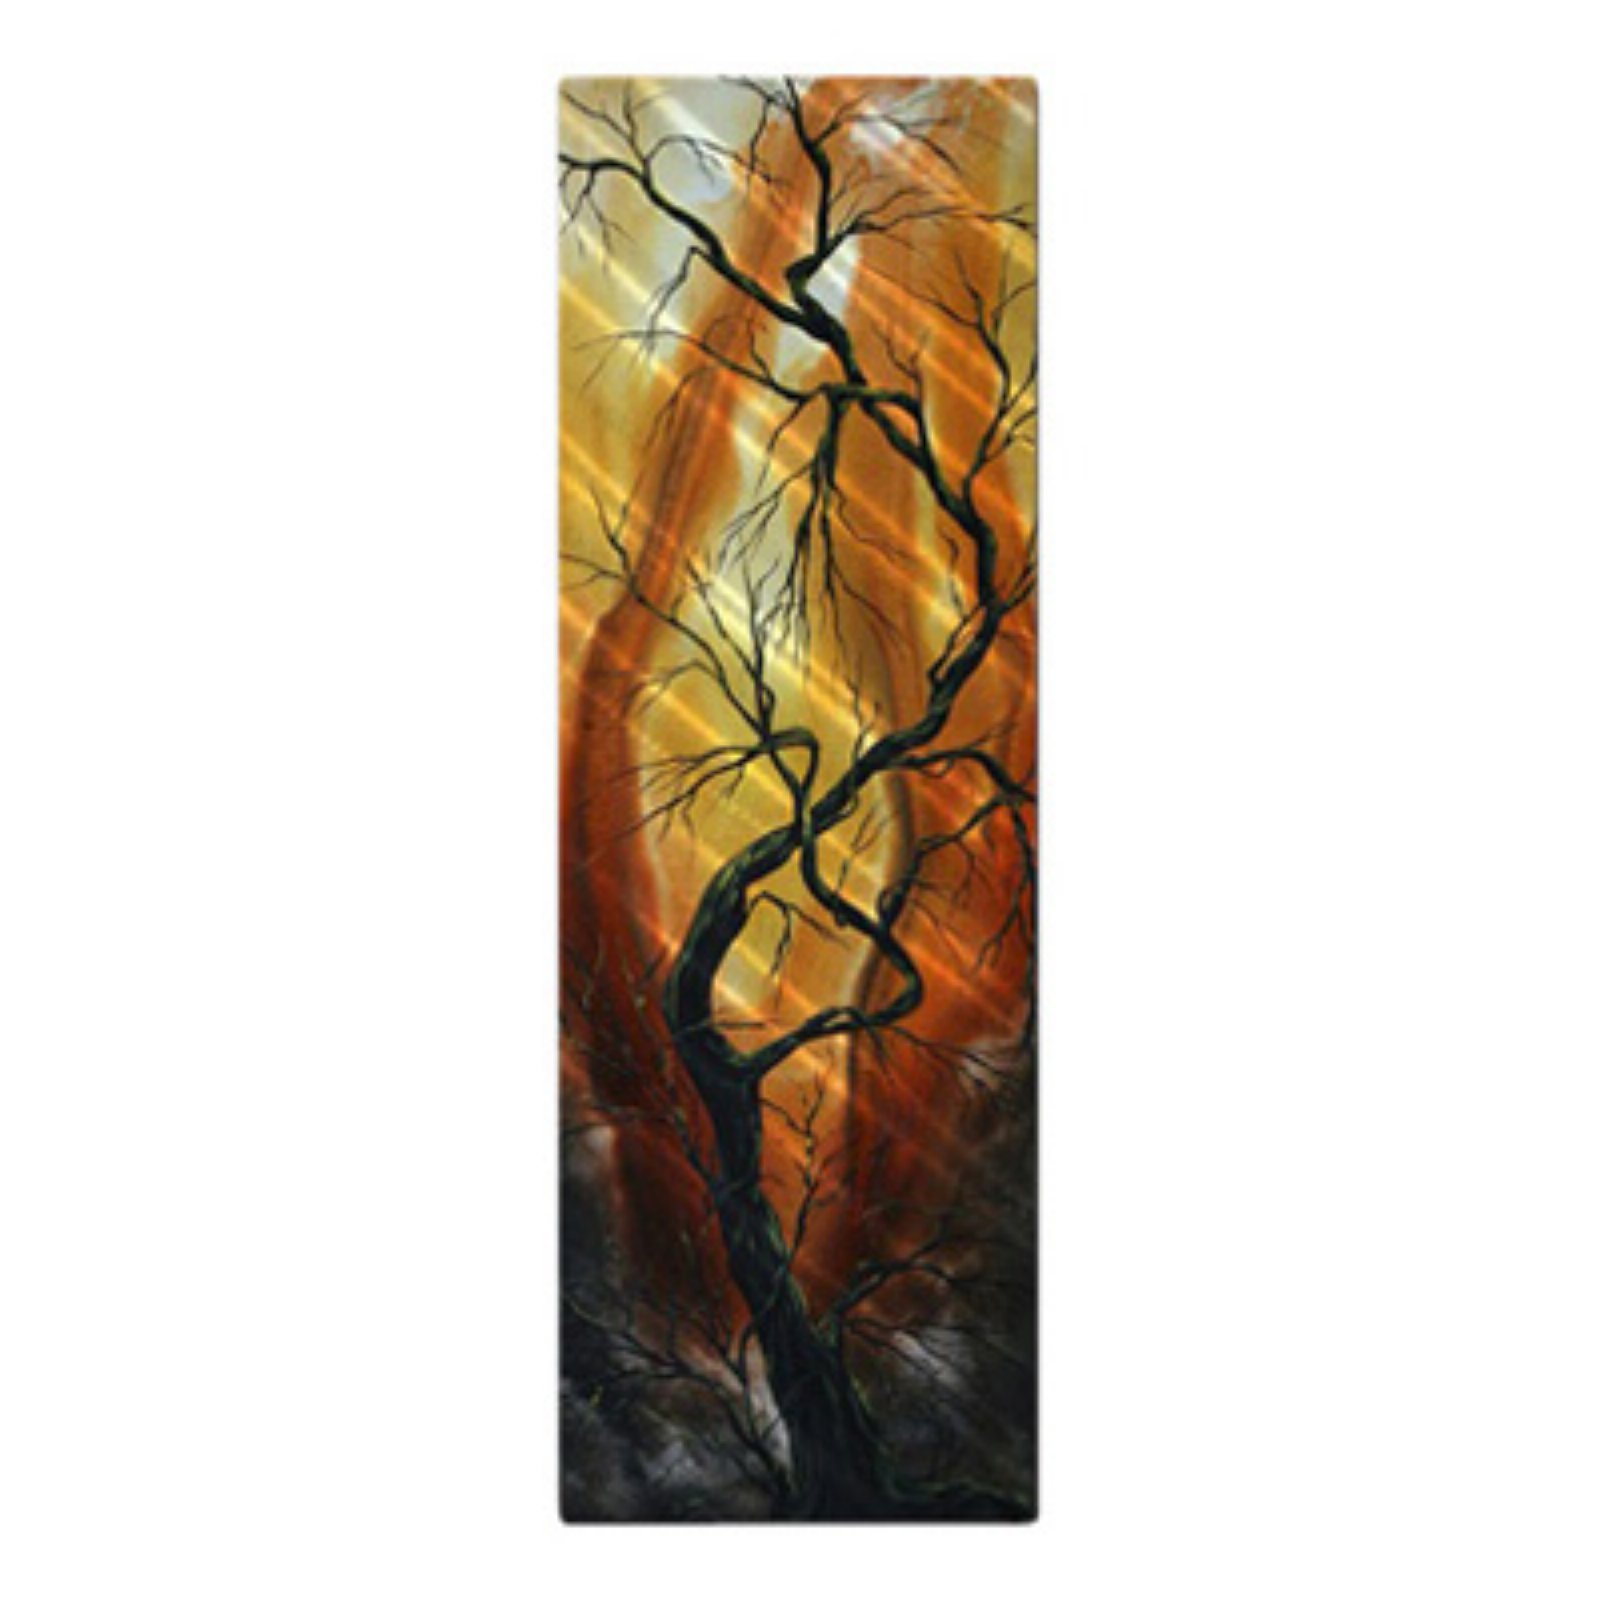 Striving to be the Best Metal Wall Art - 8W x 23.5H in.